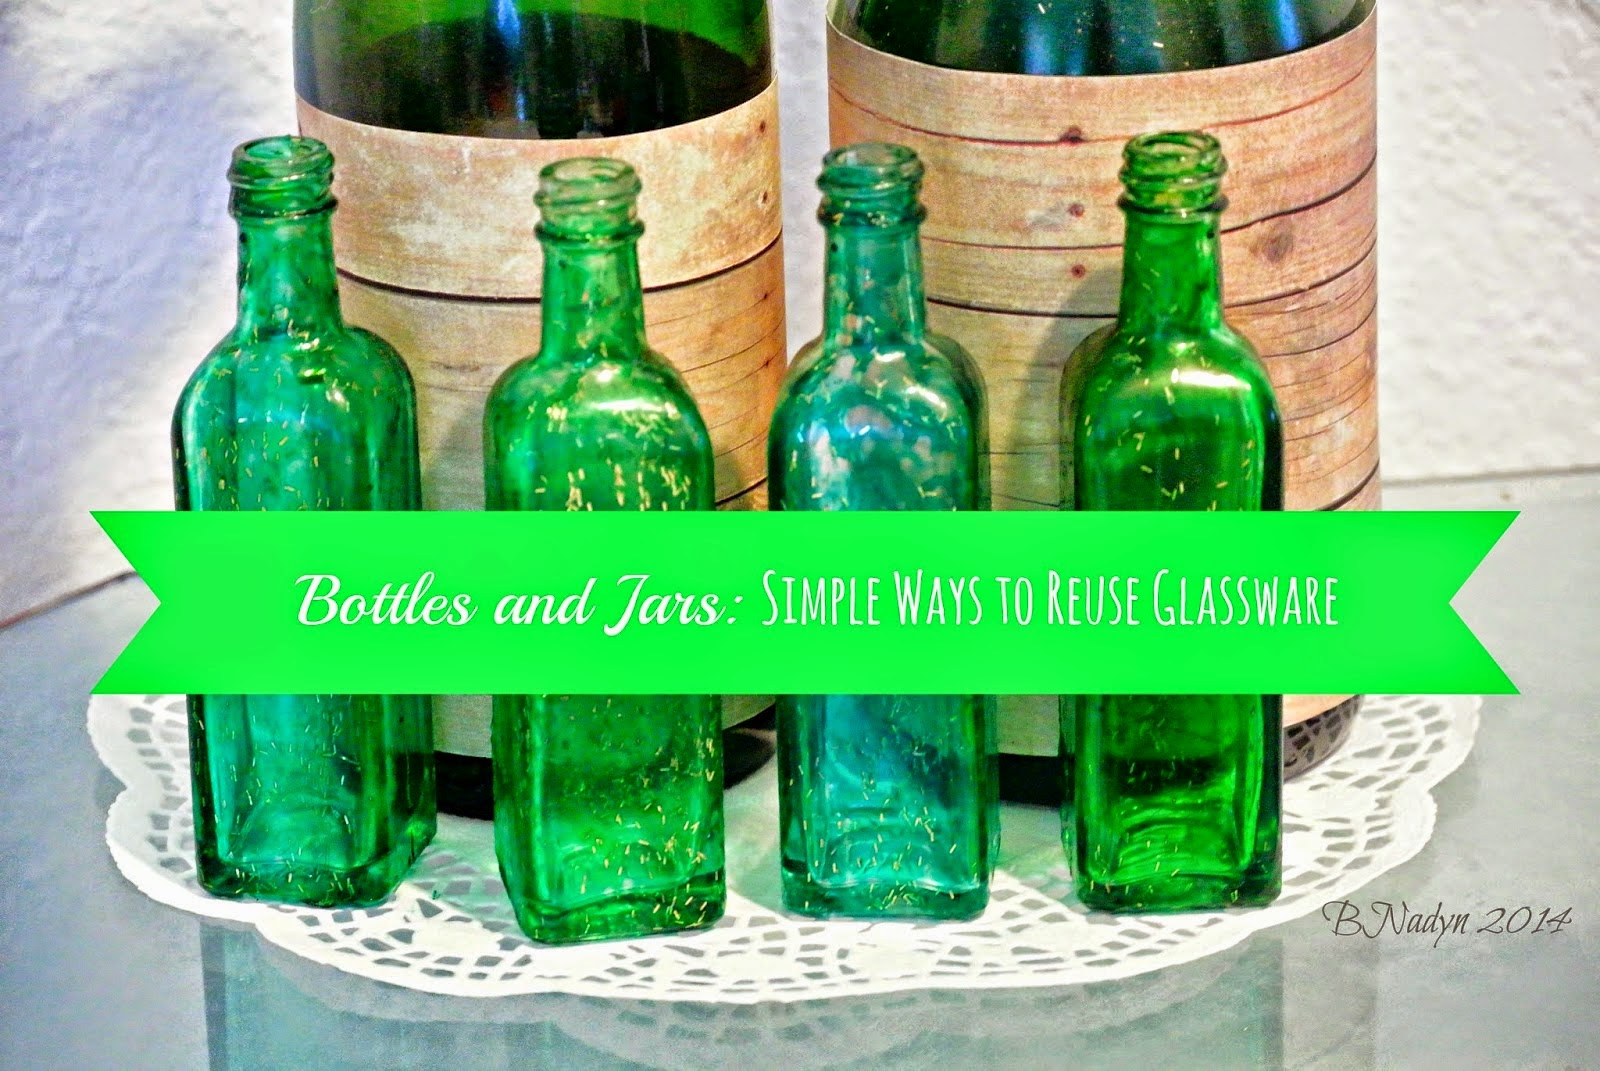 Reusing Glass Bottles and Jars